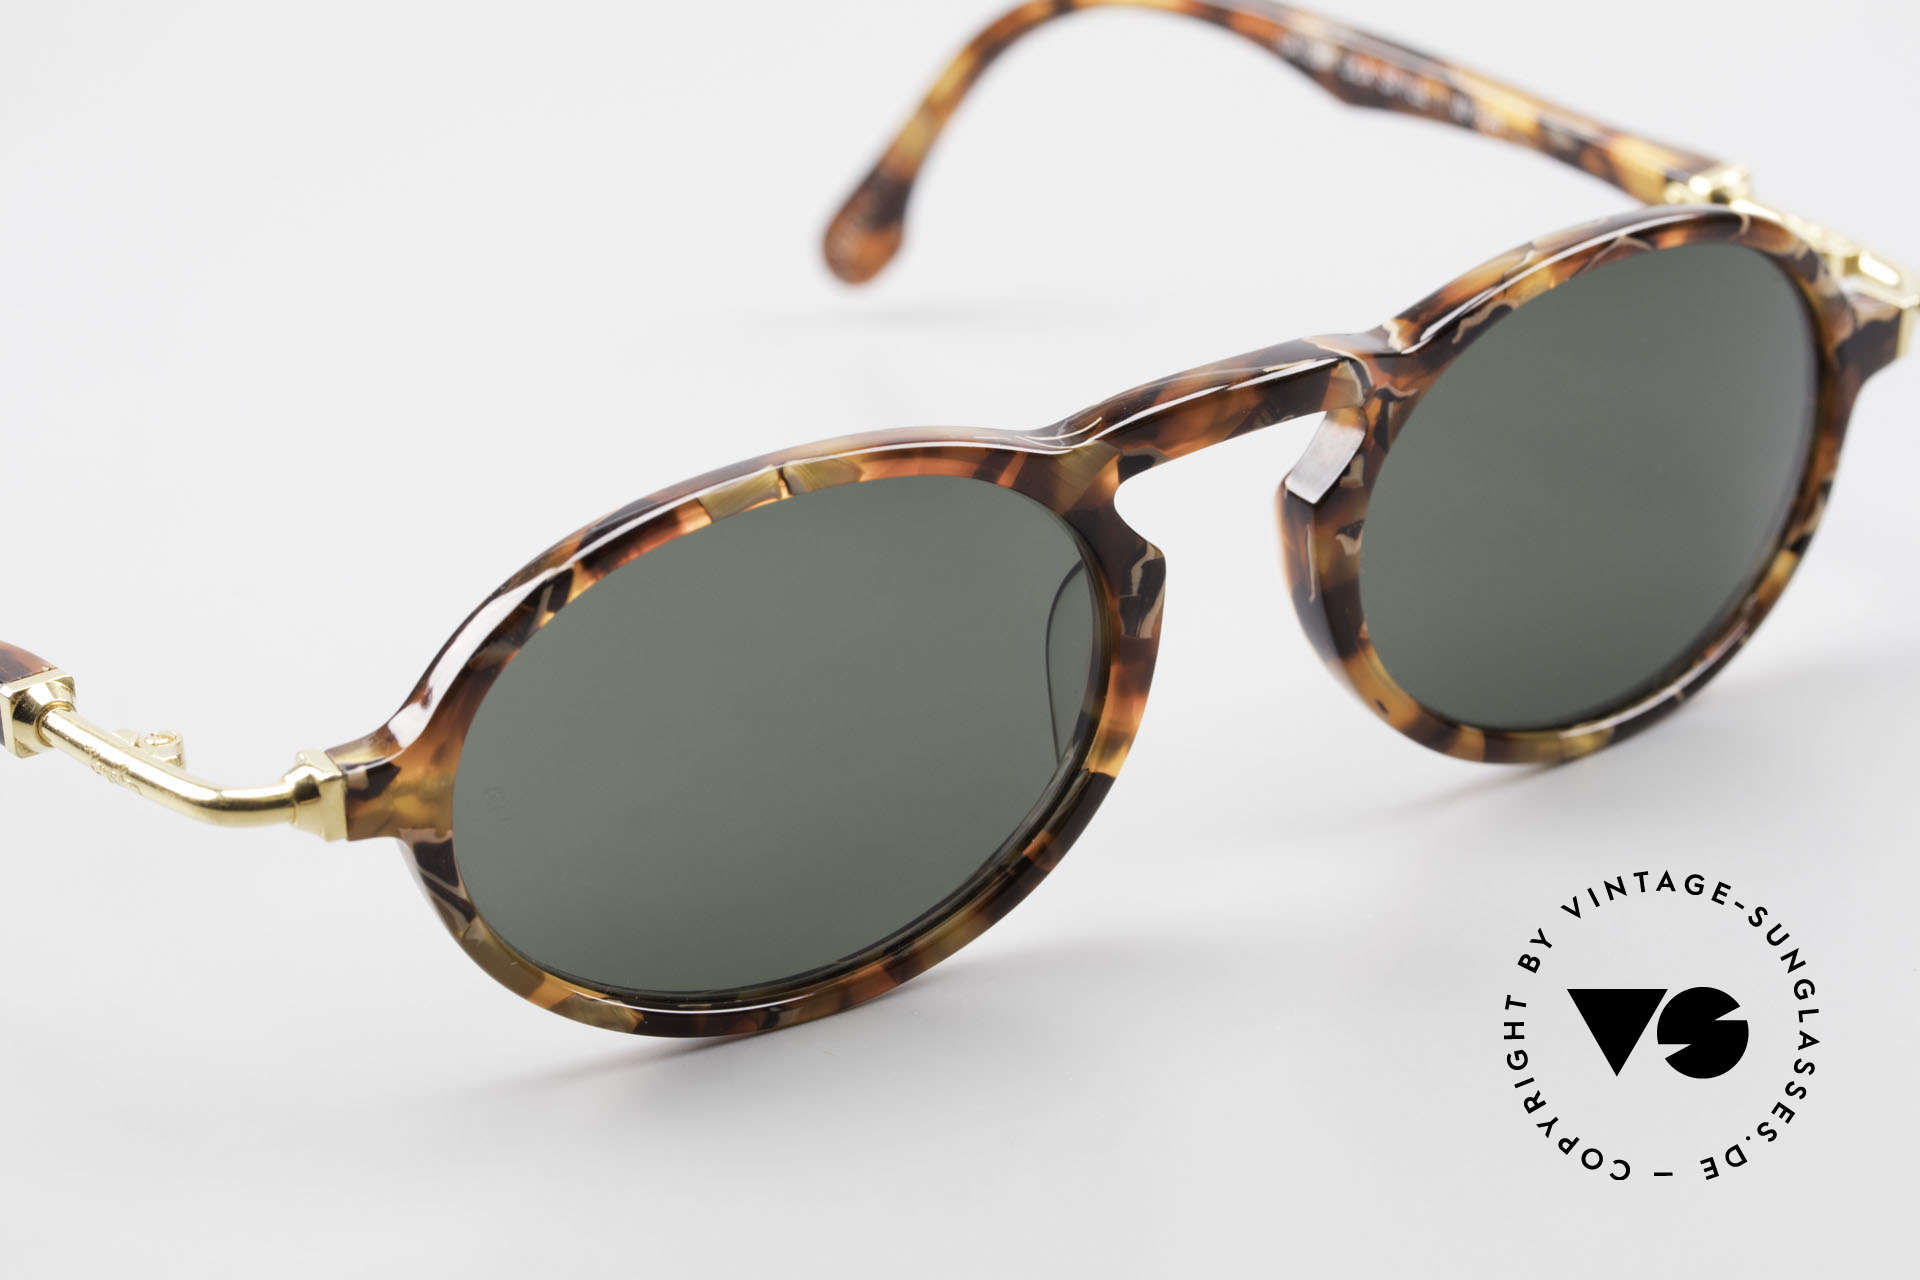 Ray Ban Gatsby 1 DLX B&L USA Original Ray-Ban 90's, NO RETRO SHADES, but an over 25 years old RARITY, Made for Men and Women